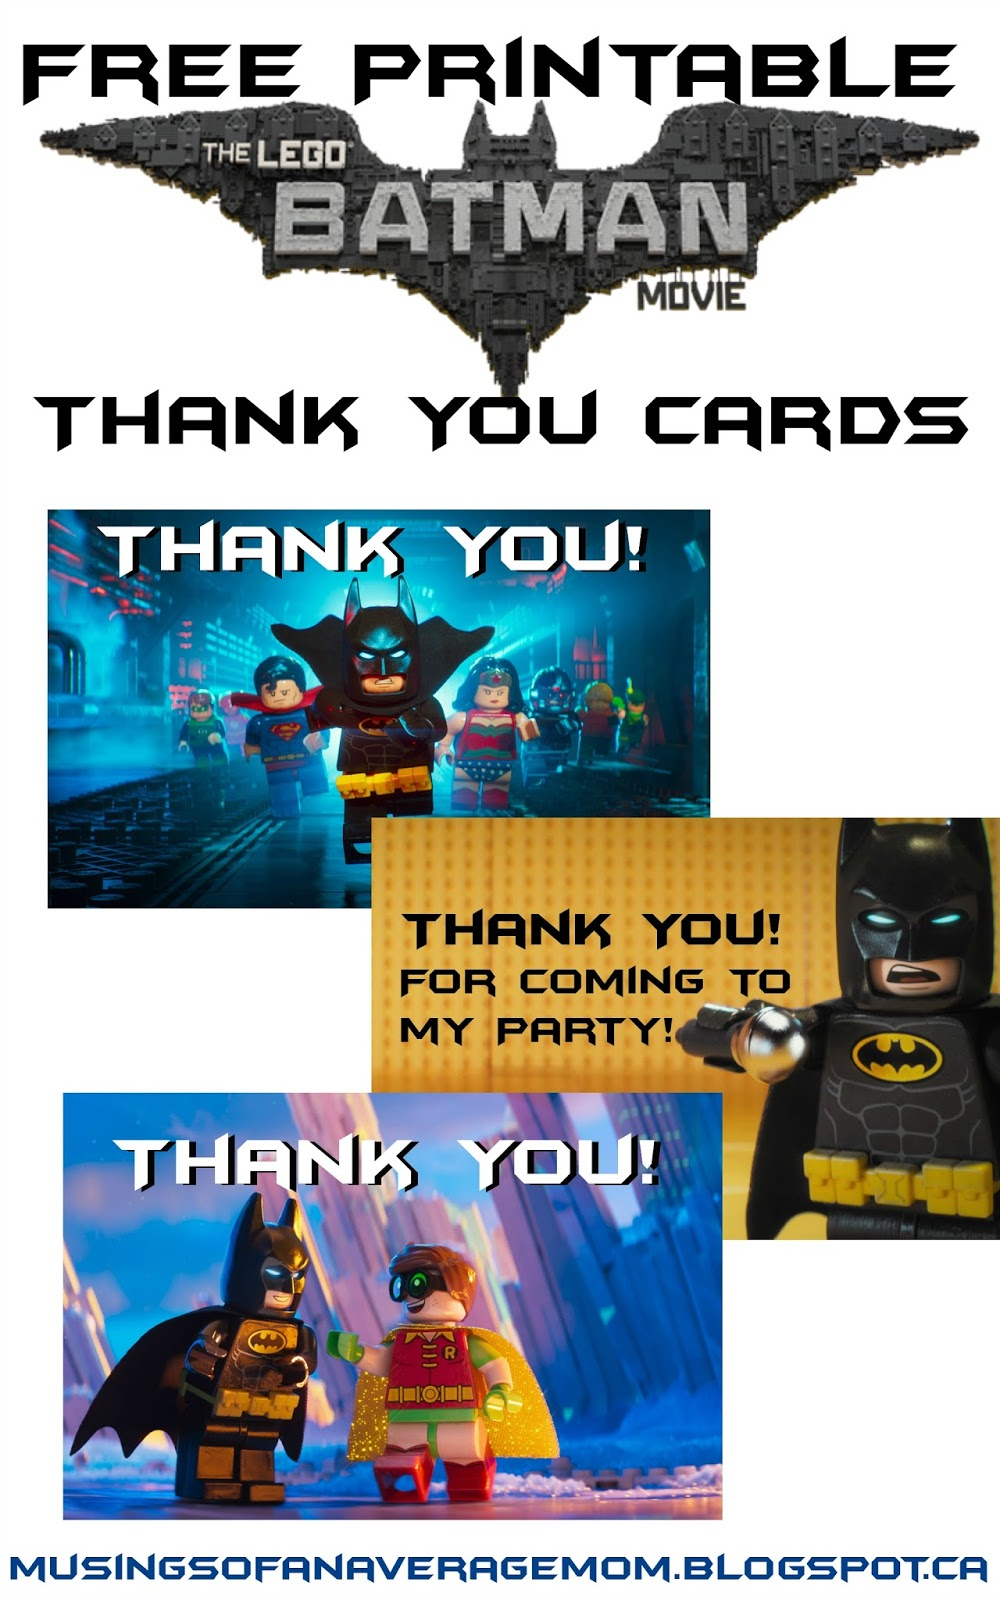 Musings of an Average Mom: Lego Batman Thank You Cards